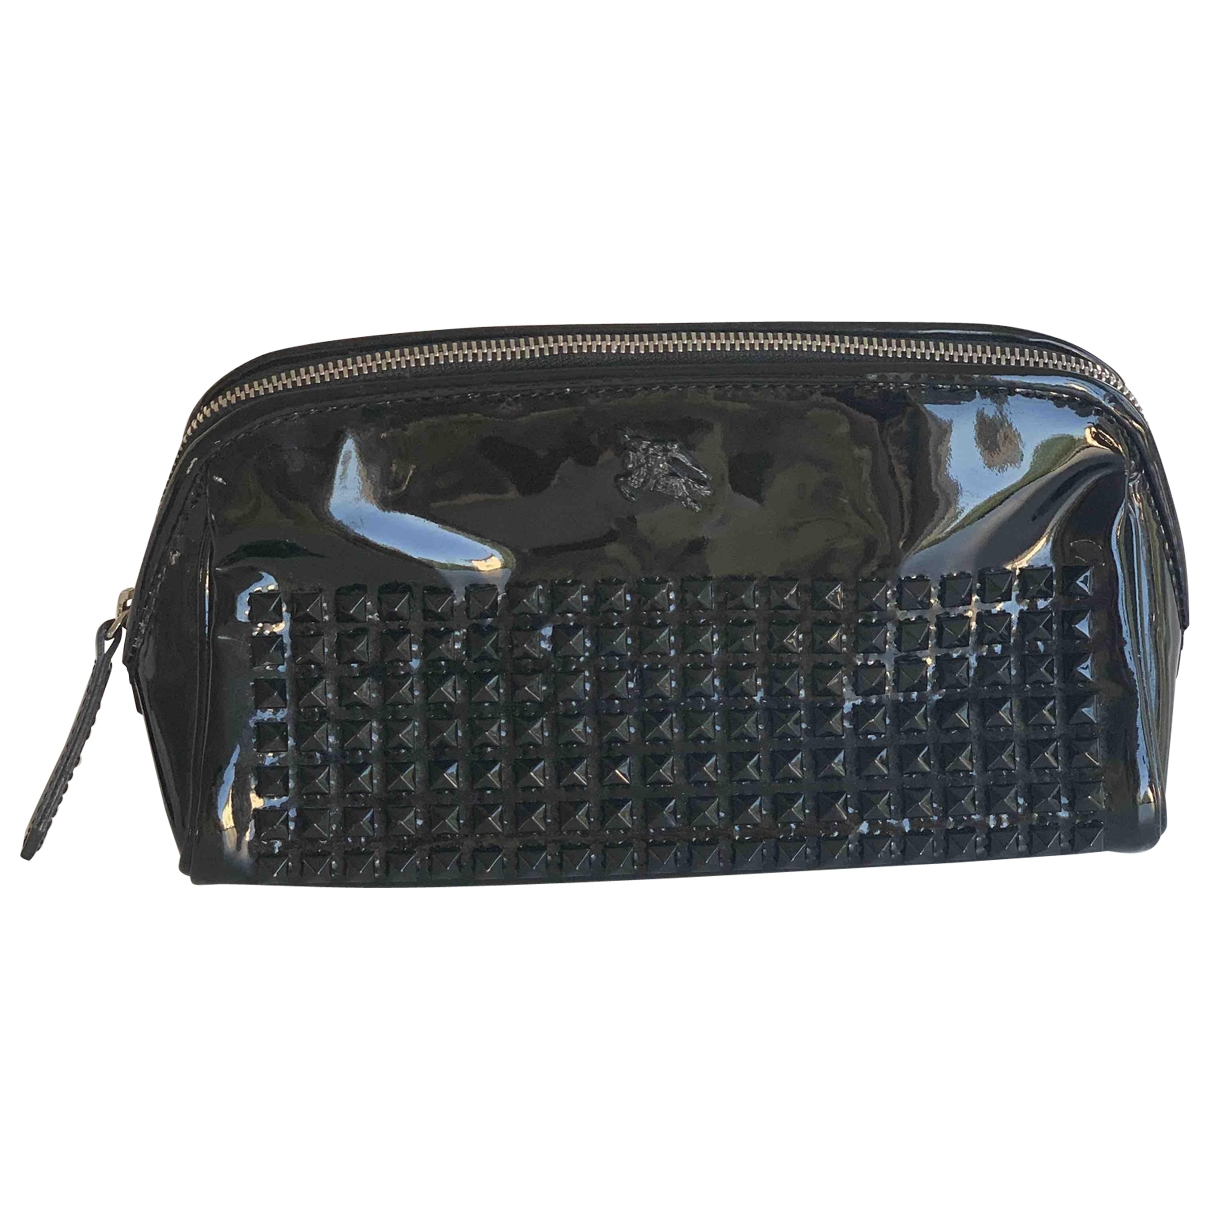 Burberry \N Black Patent leather Purses, wallet & cases for Women \N